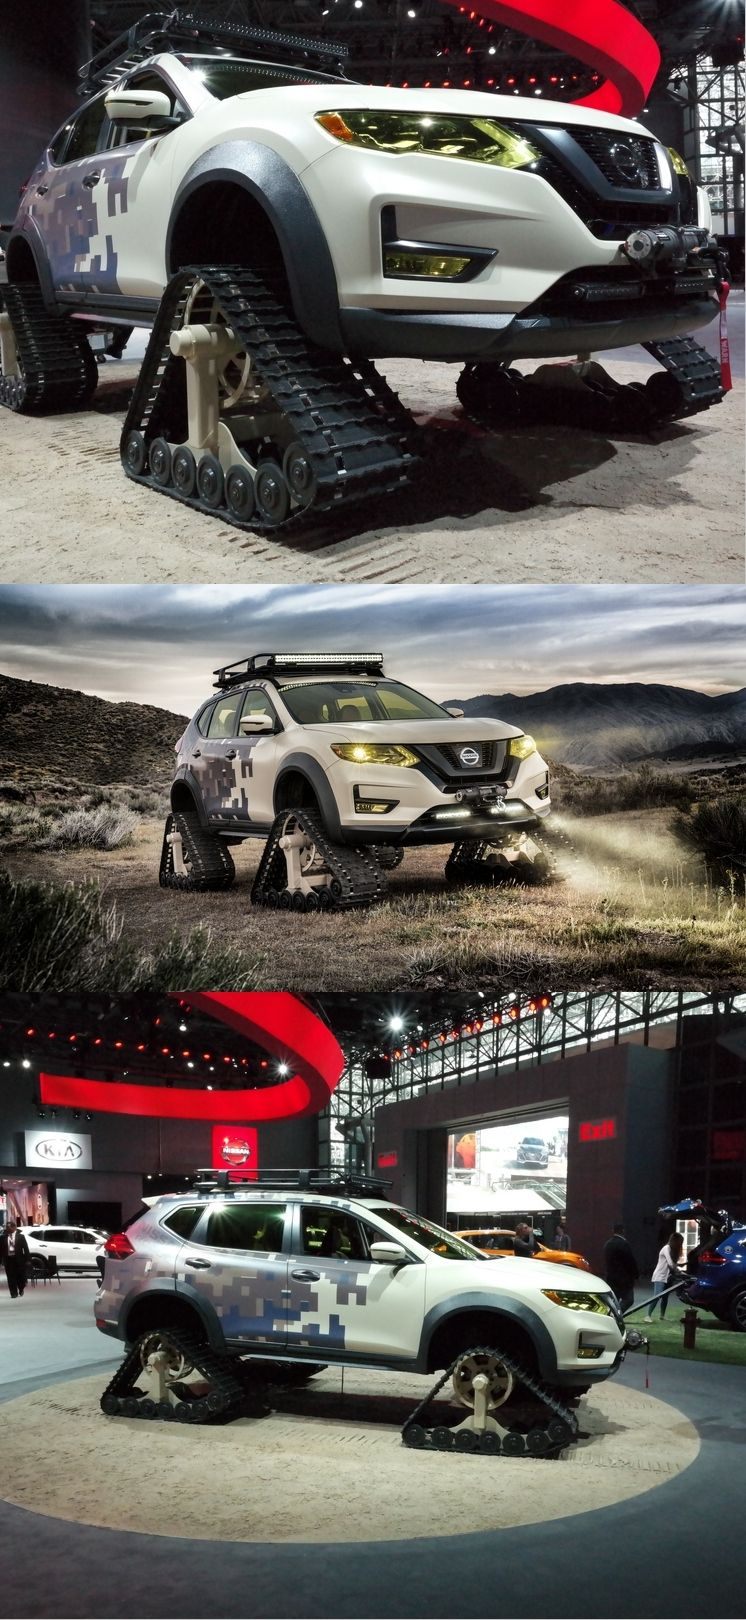 Nissan Rogue Trail Warrior Project sets tracks for